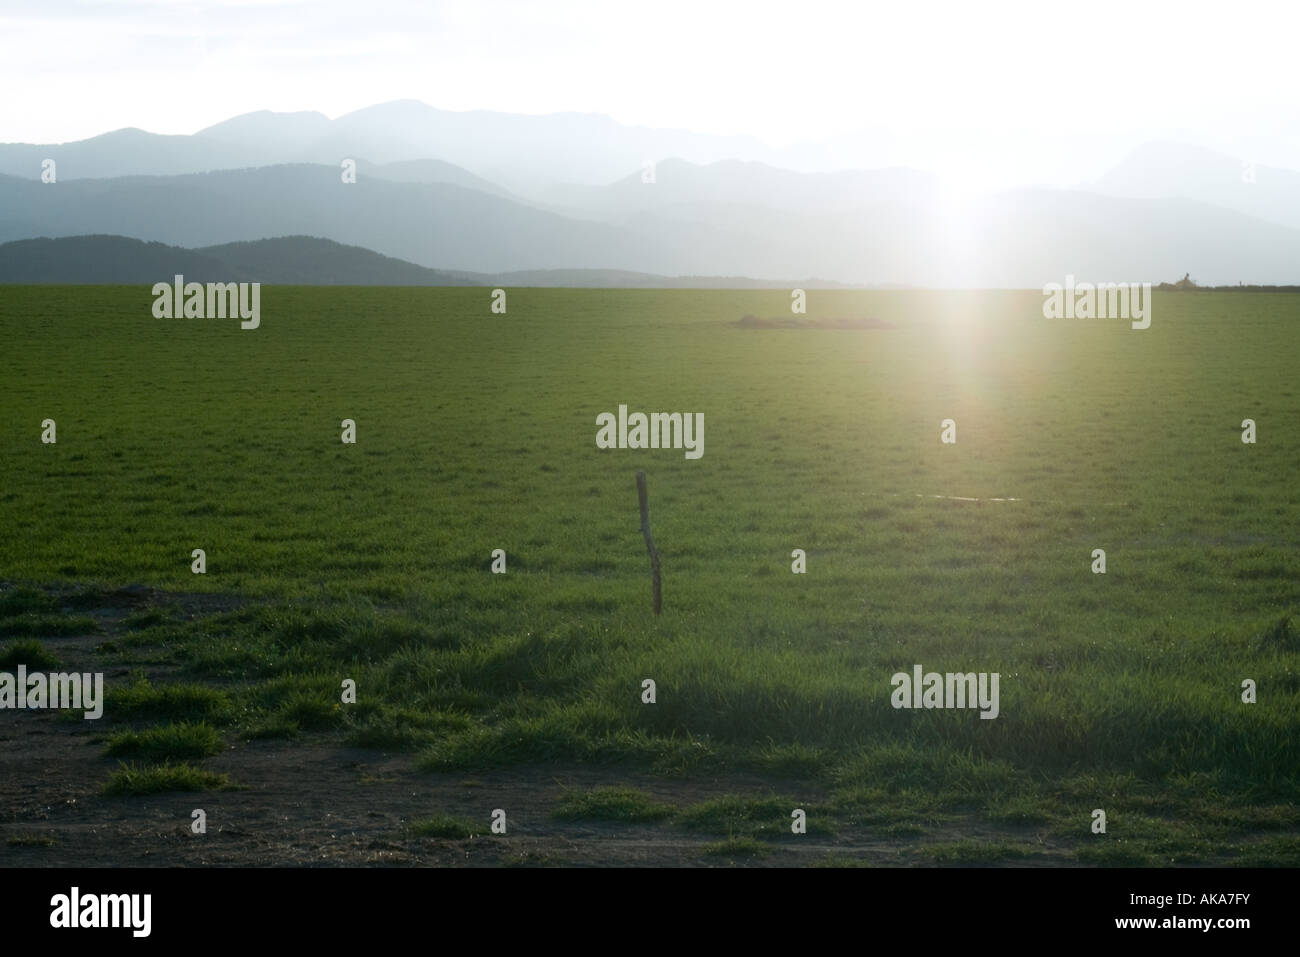 Green field with mountains in background - Stock Image